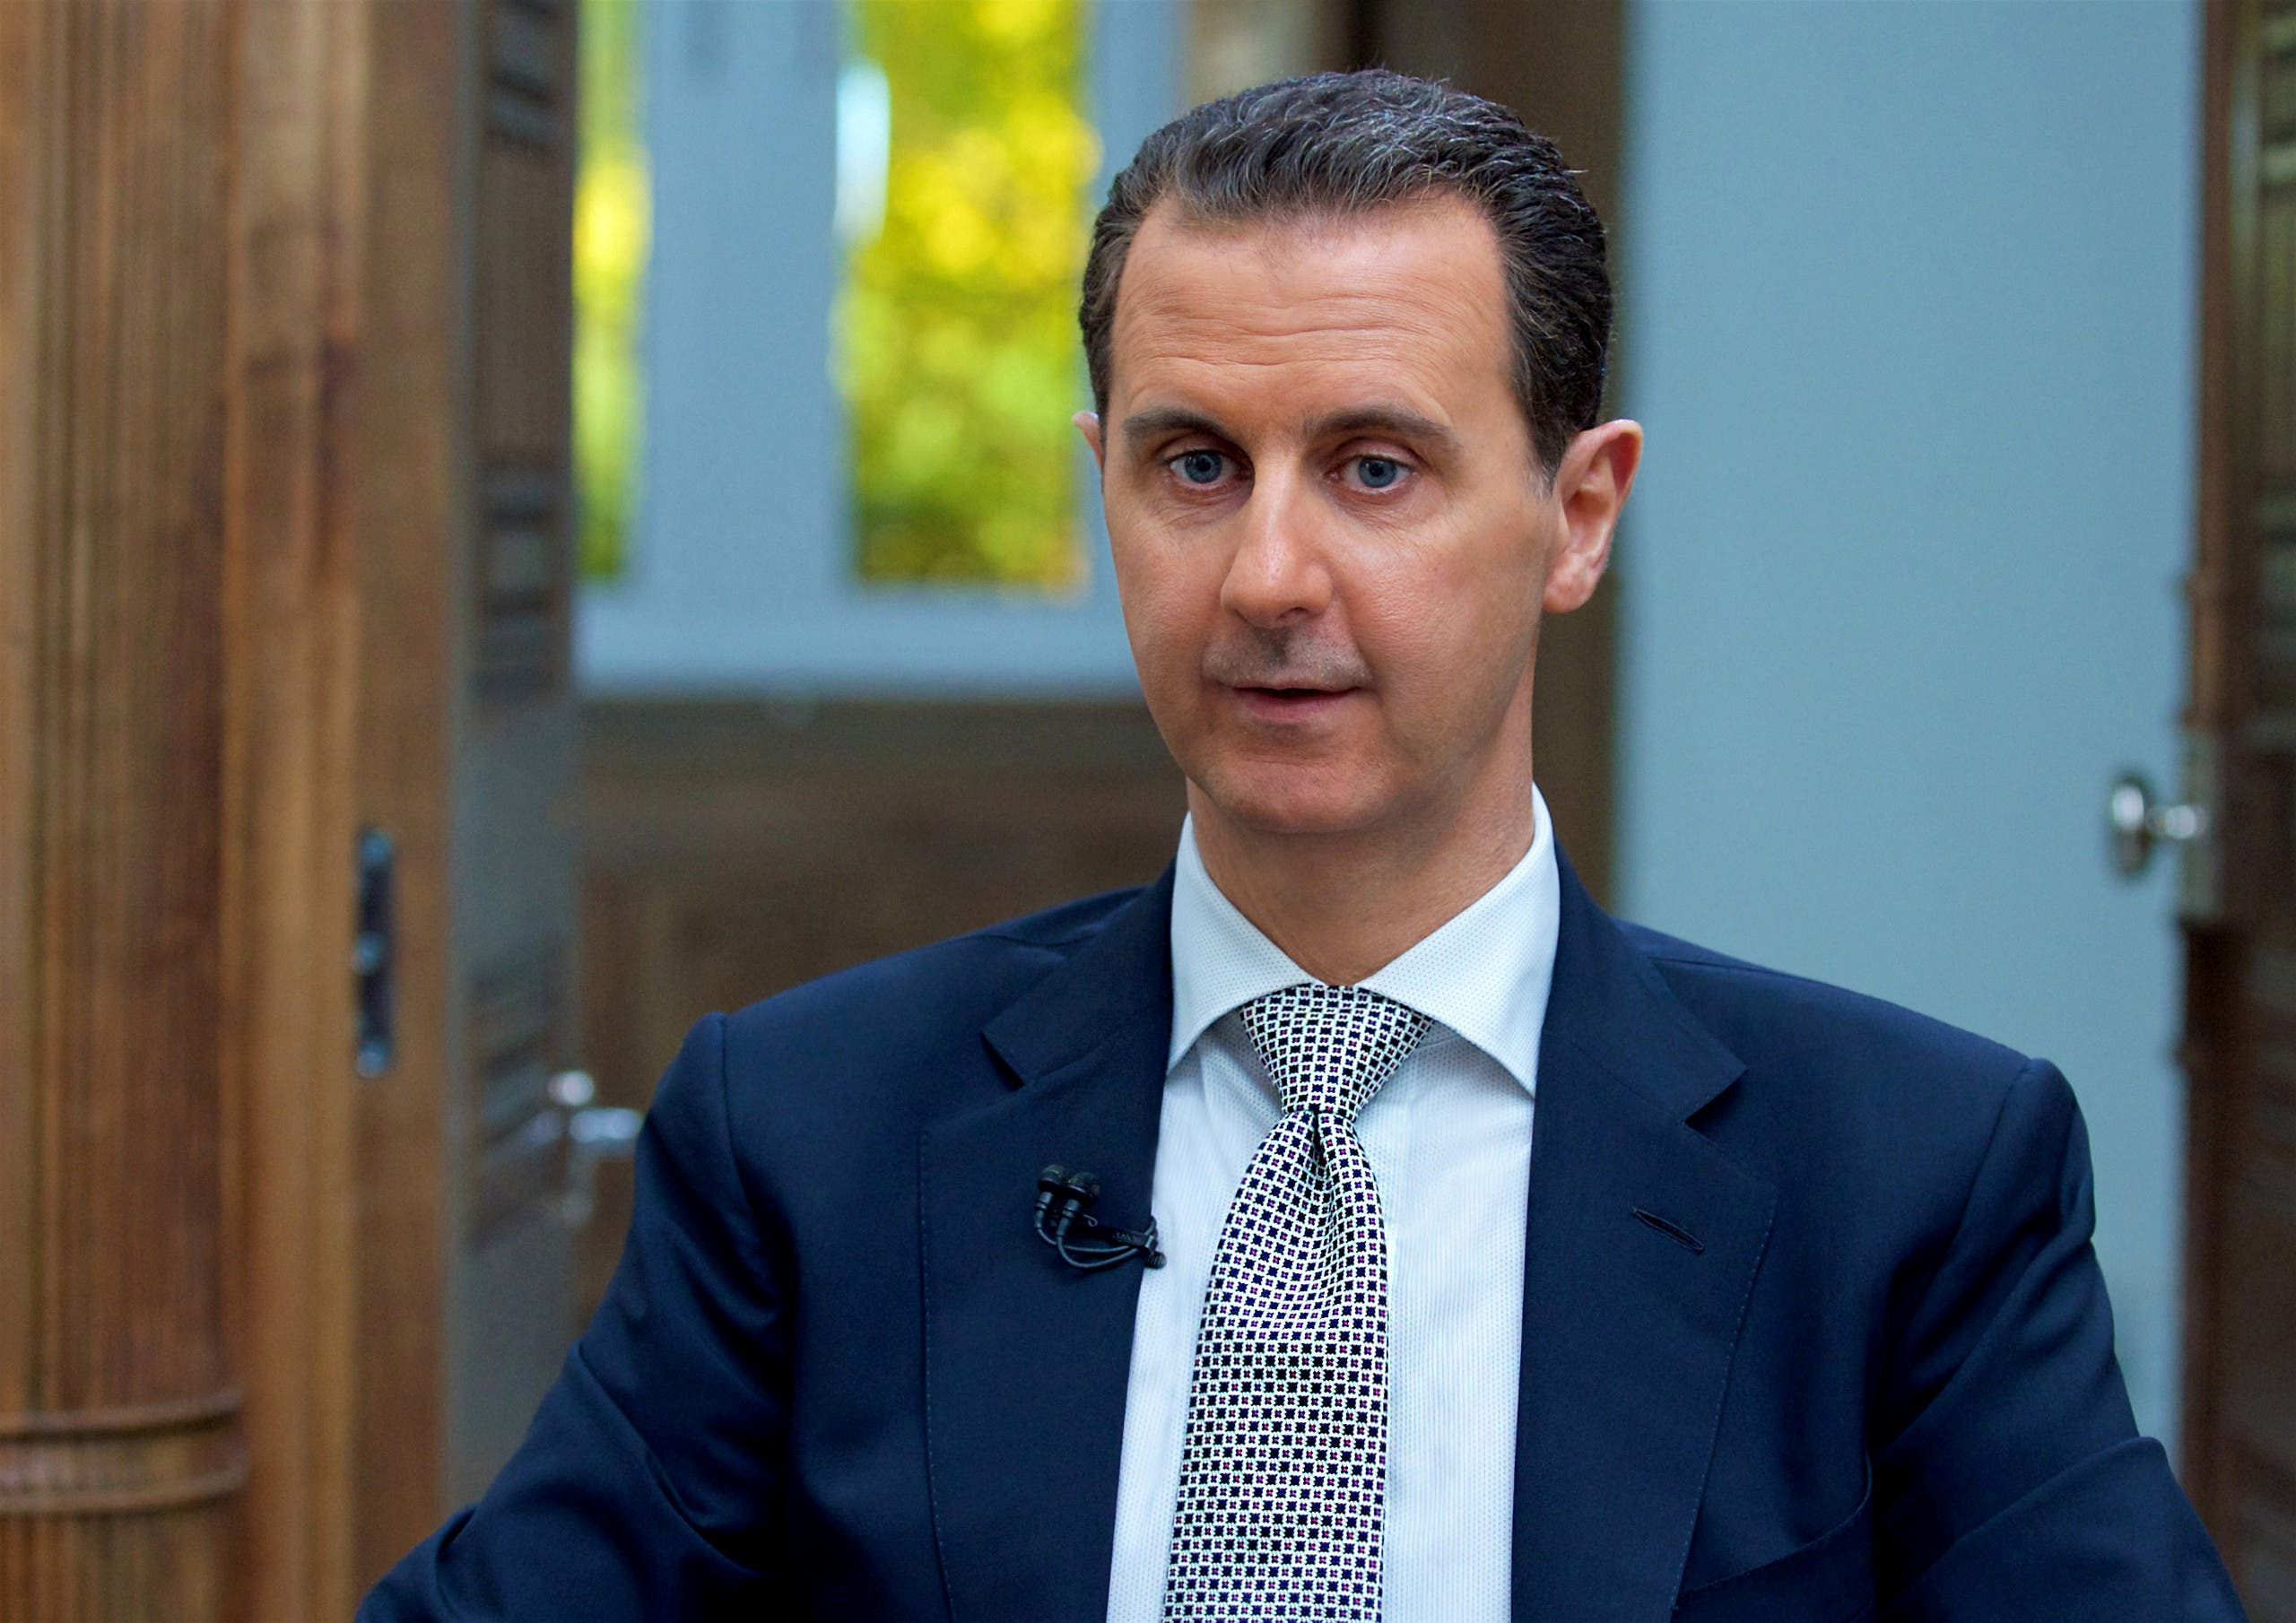 Syria's President Bashar al-Assad speaks during an interview with AFP news agency in Damascus, Syria in this handout picture provided by SANA on April 13, 2017.